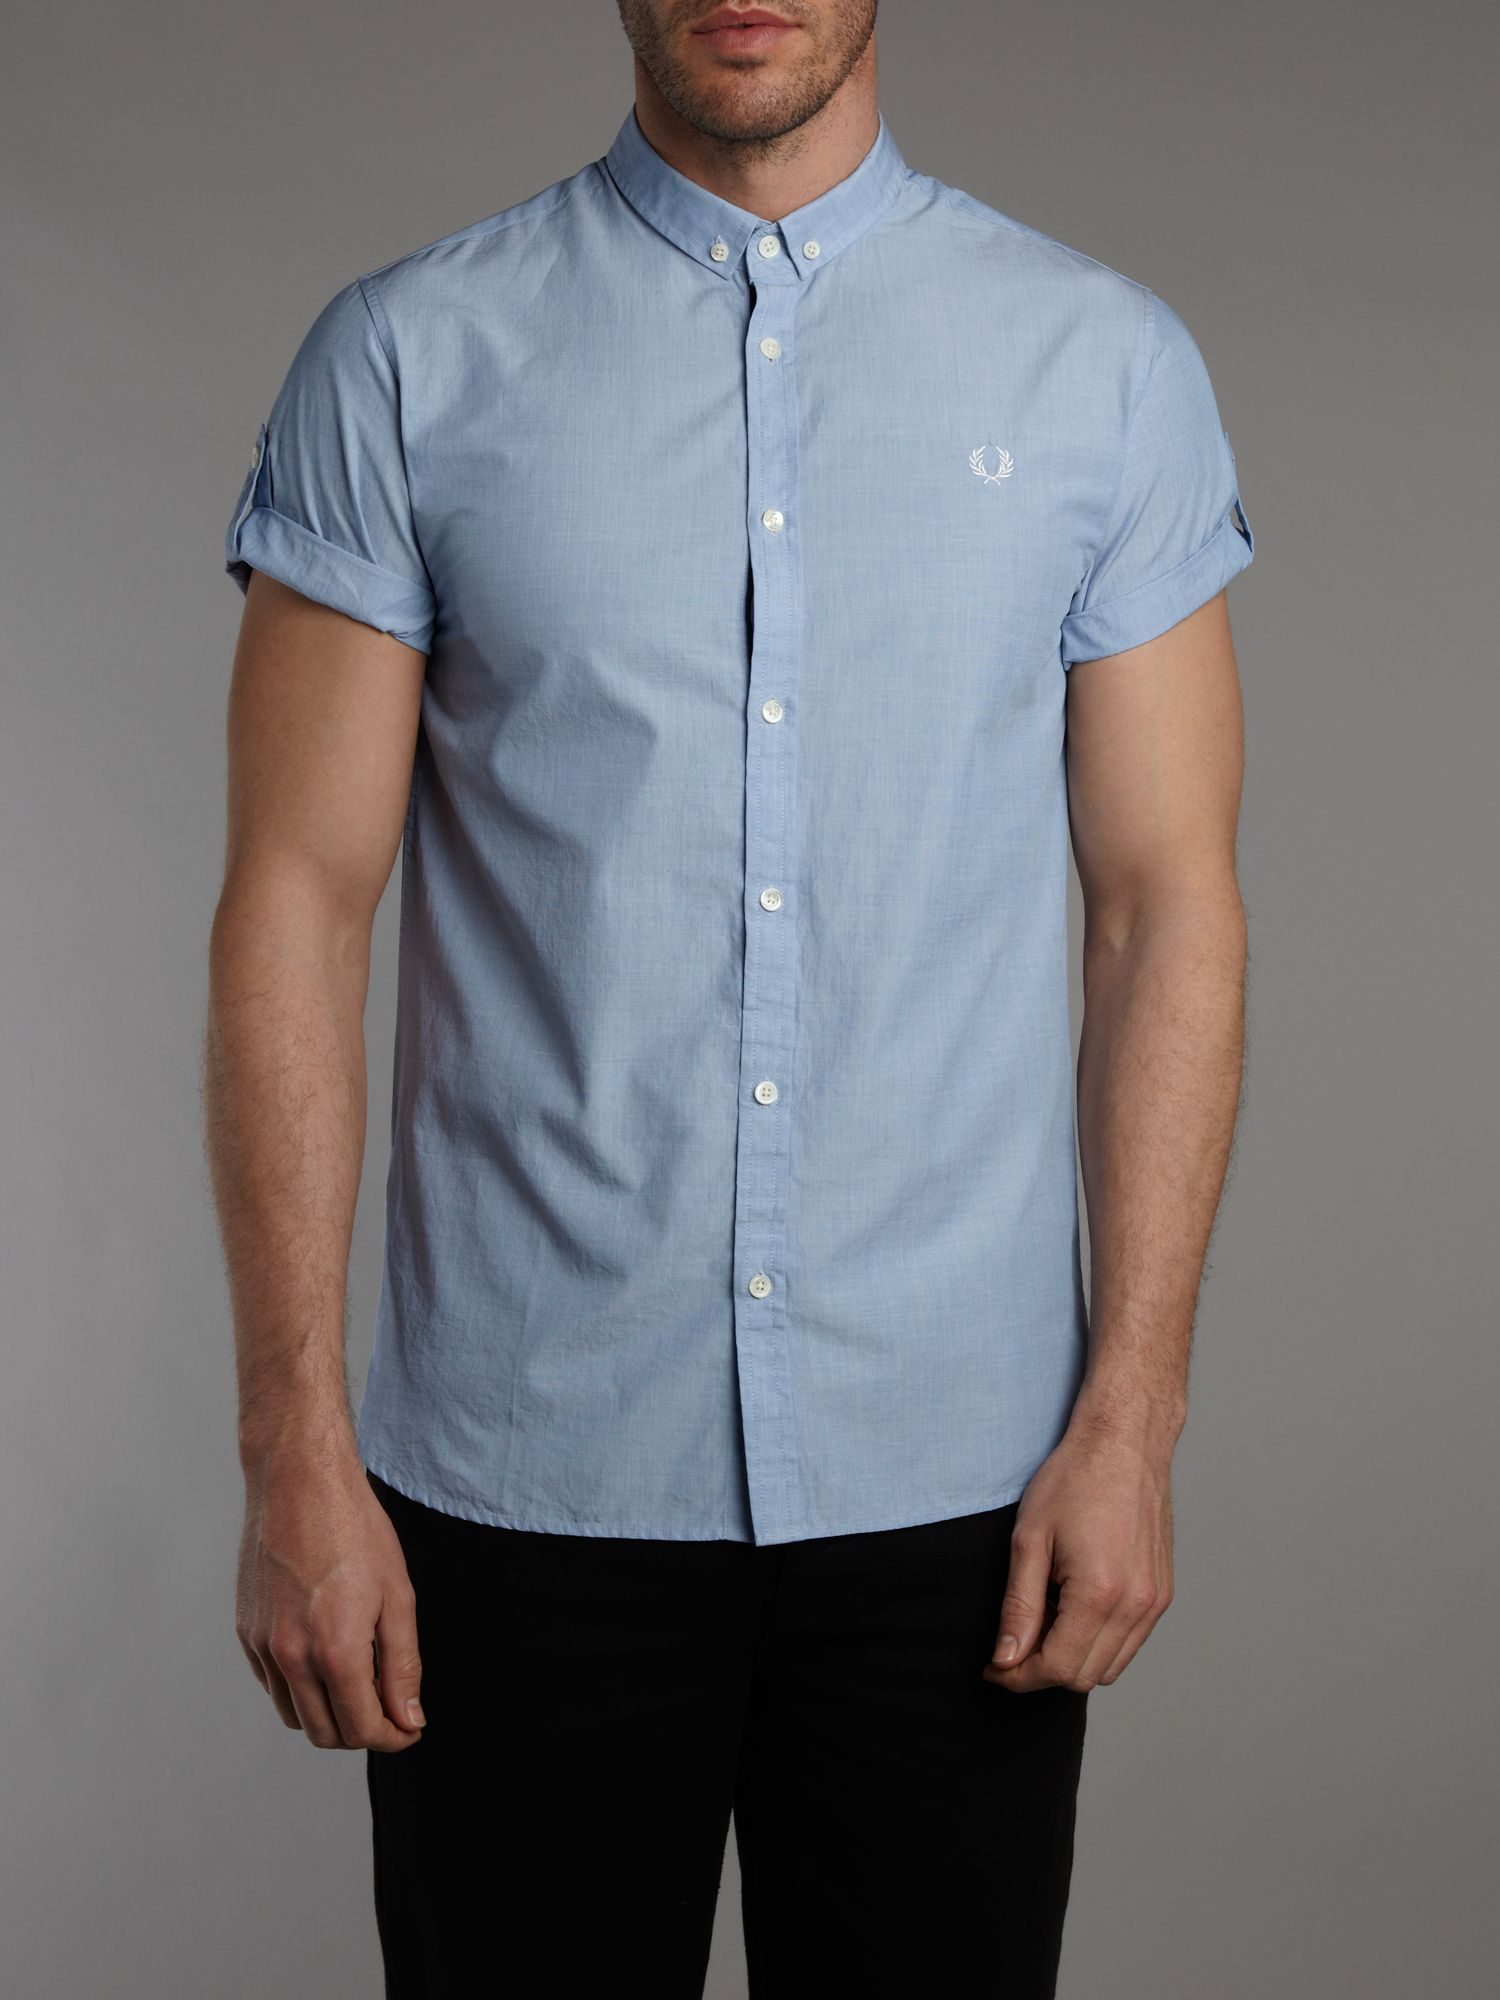 Fred perry short sleeve end on end shirt in blue for men for Fred perry mens shirts sale